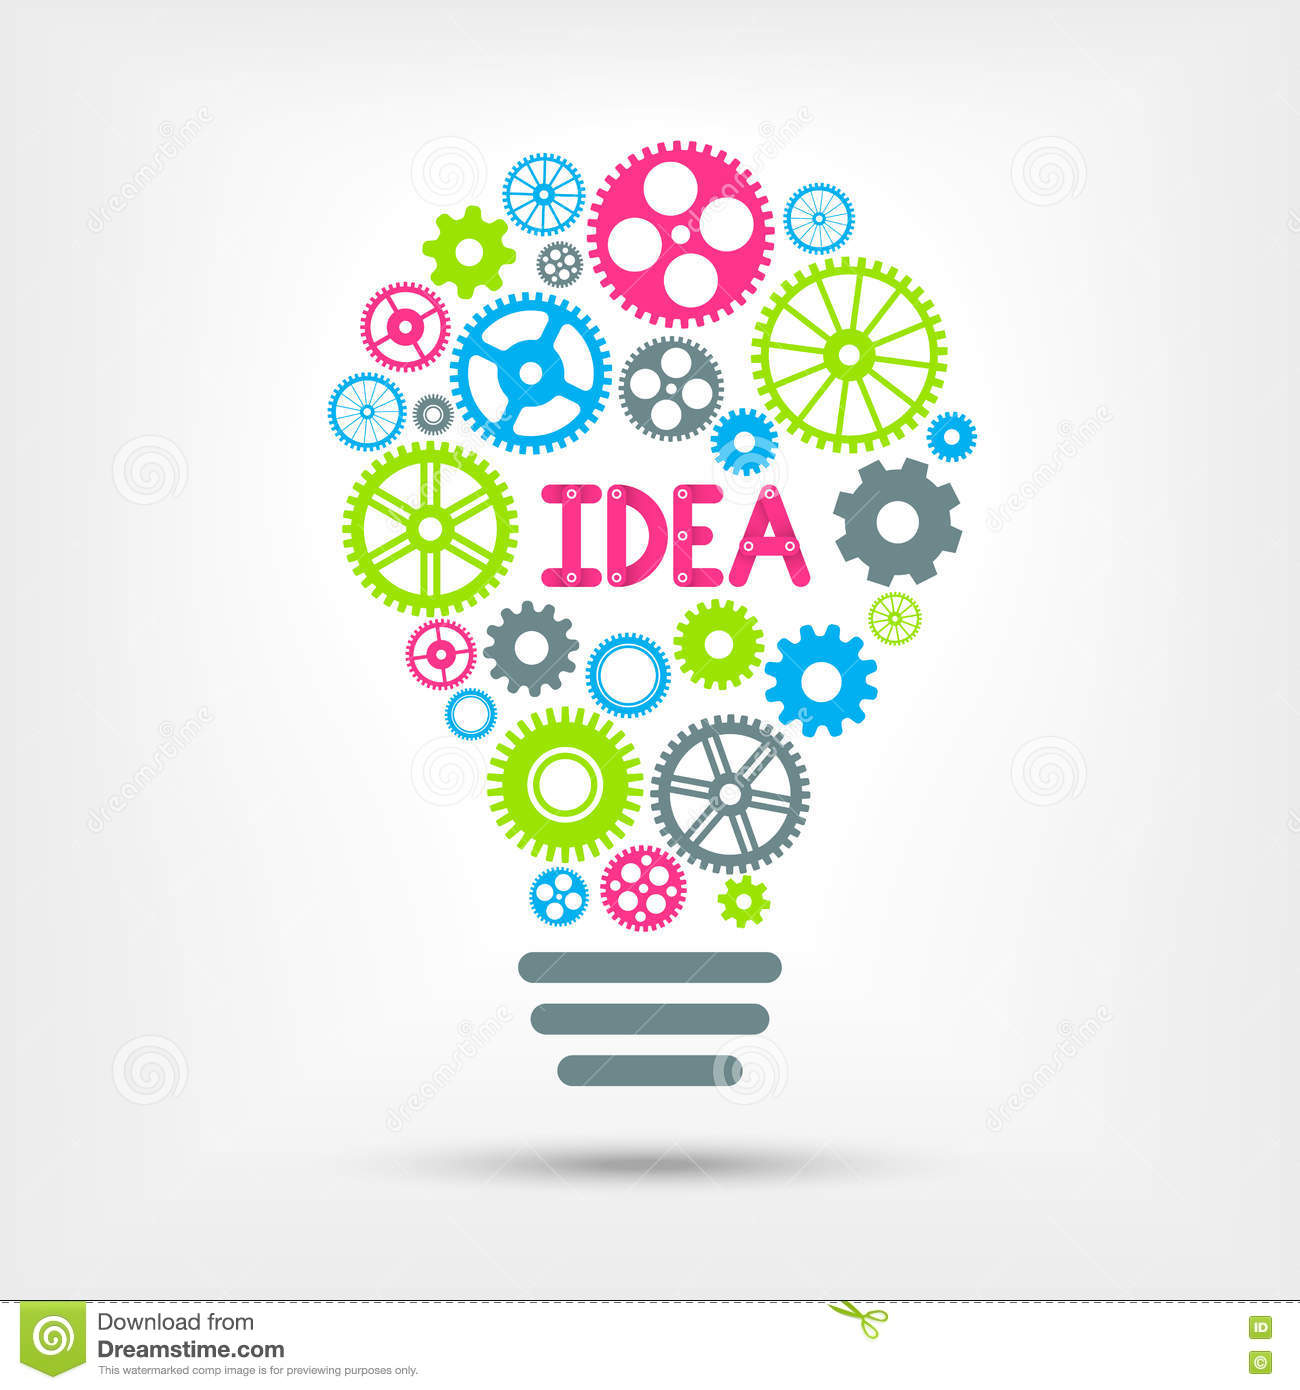 Idees And Solutions: Light Bulb With Word And Colorful Gears Inside. Vector